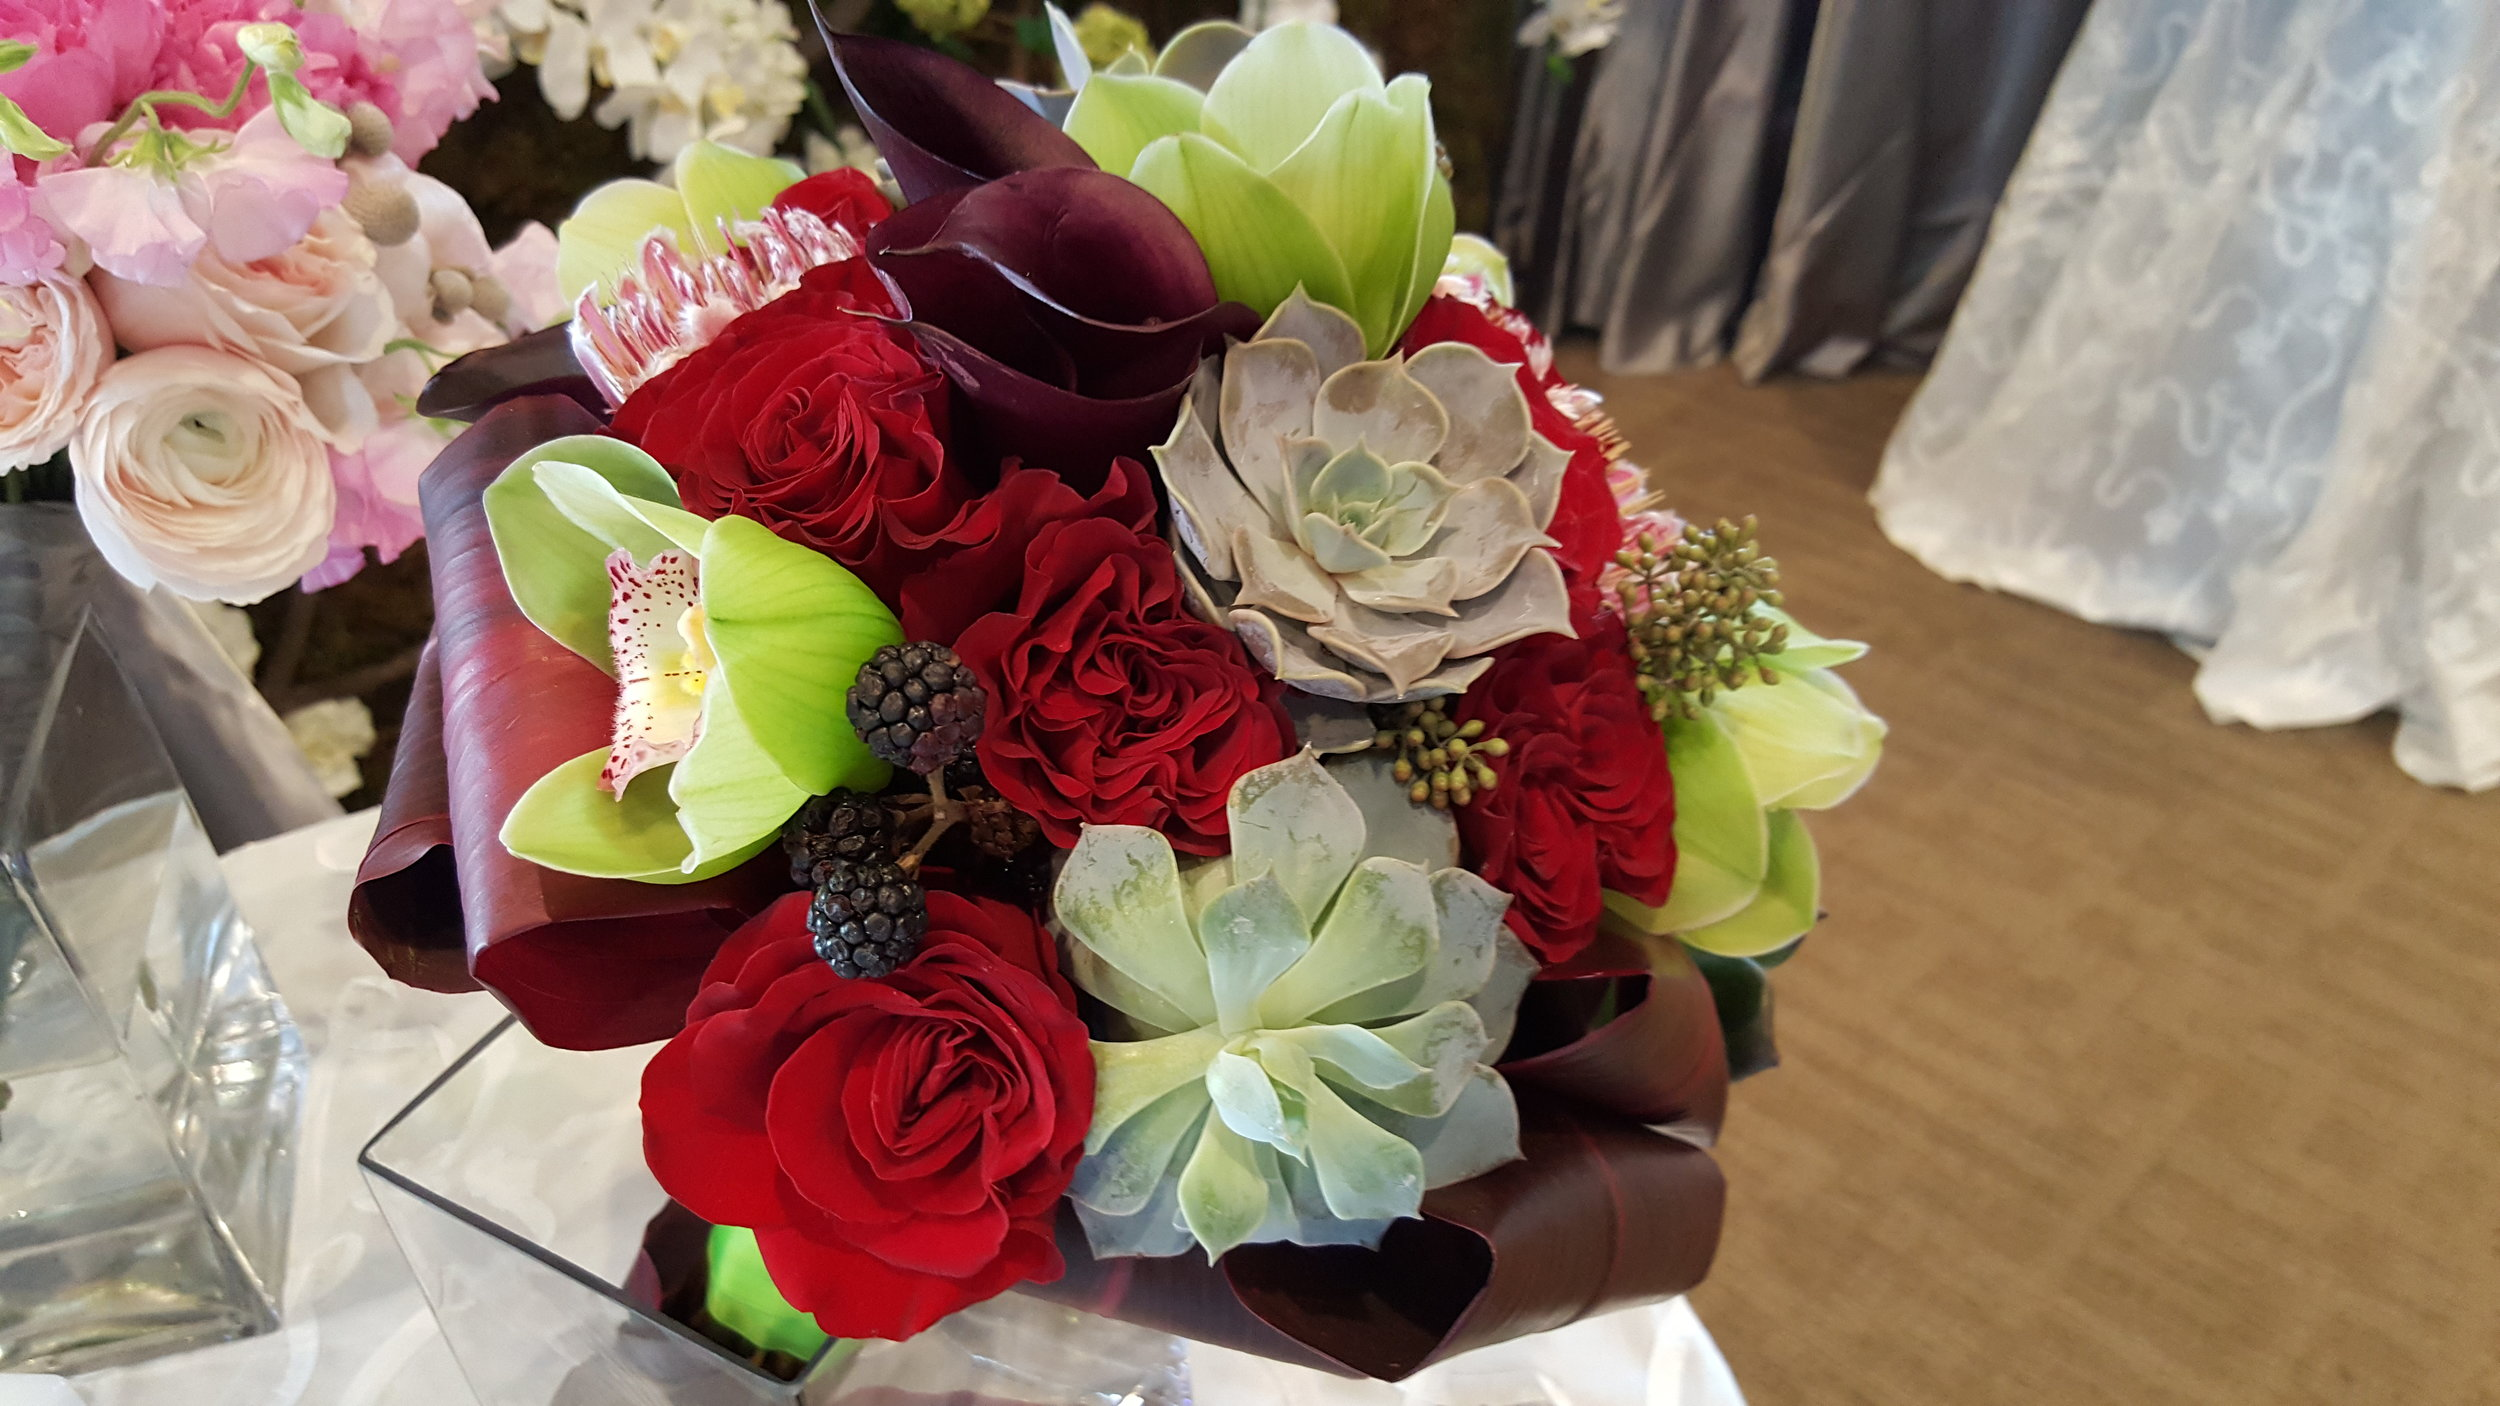 Unique floral arrangement of luxurious flowers made at Bouquets & Beyond of Woodbury